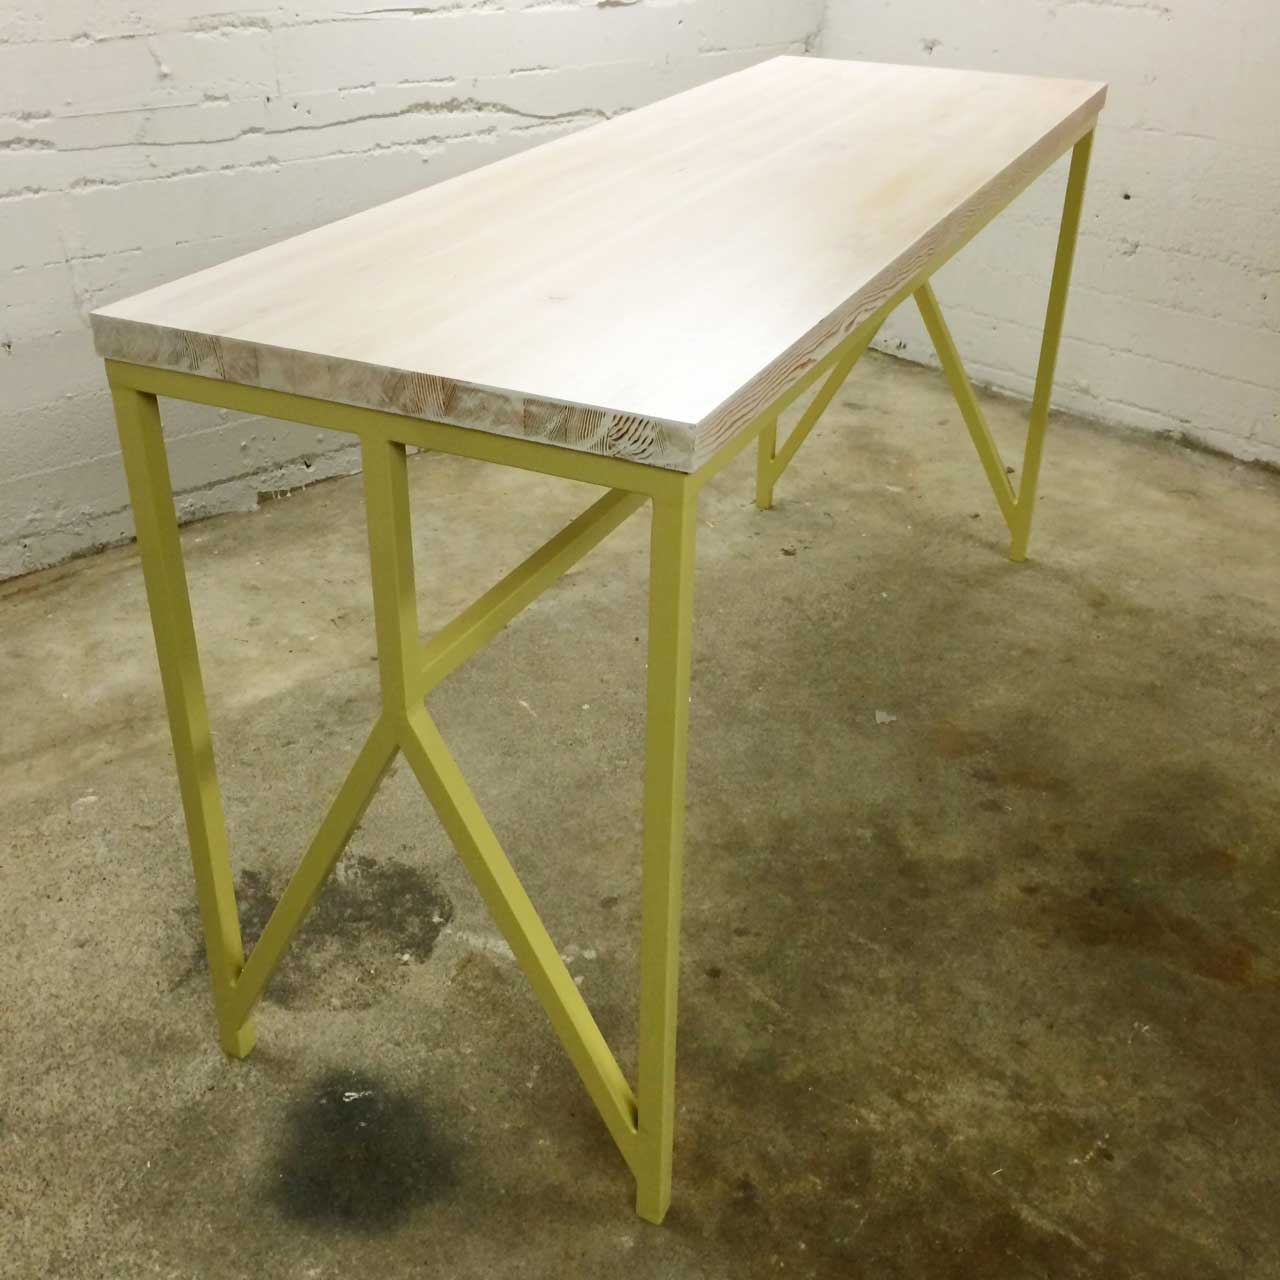 Steel Workbenches For Sale | Wooden Work Bench Kits | Metal Workbench